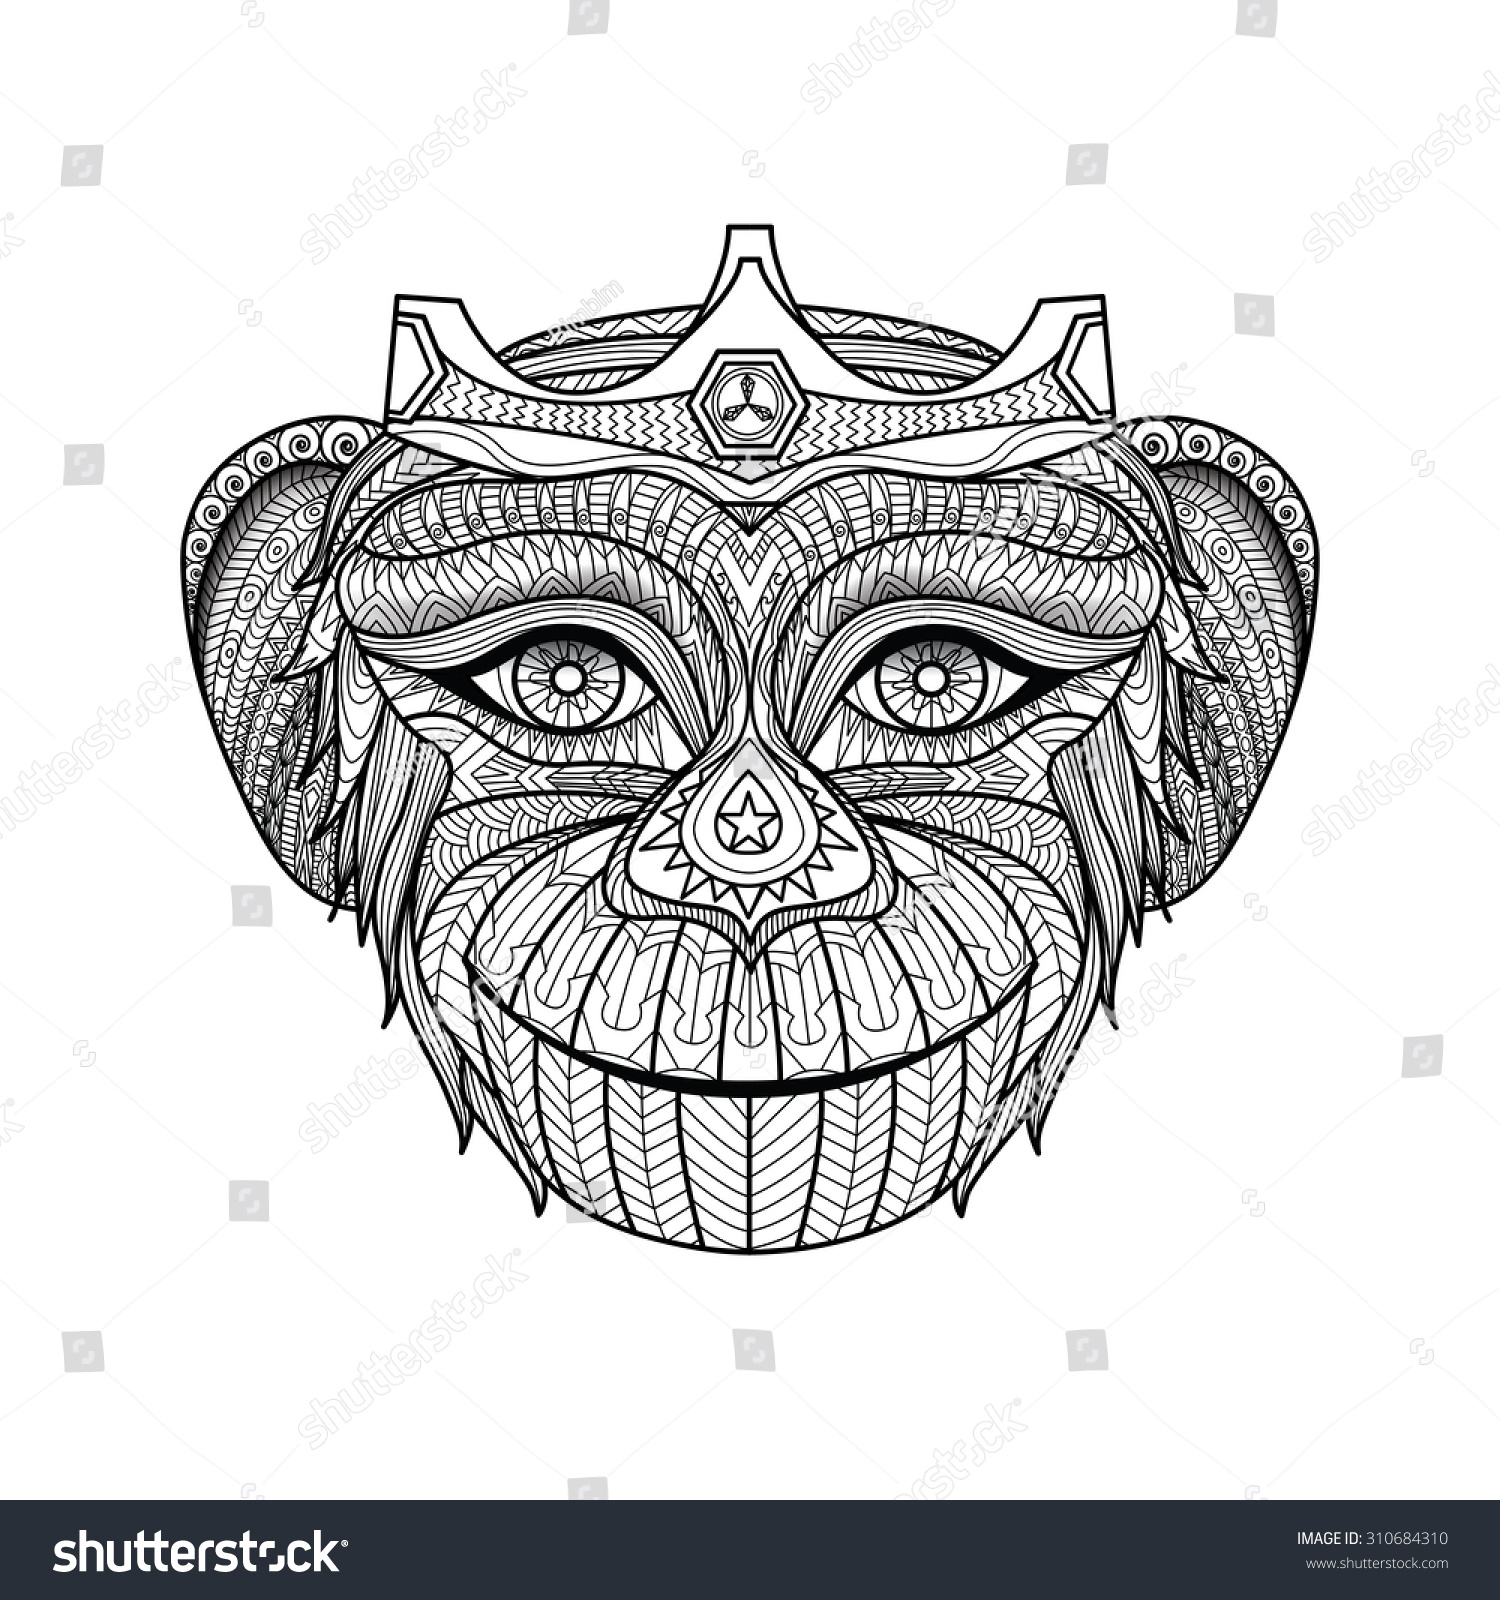 hand drawn king monkeys coloring page stock vector 310684310